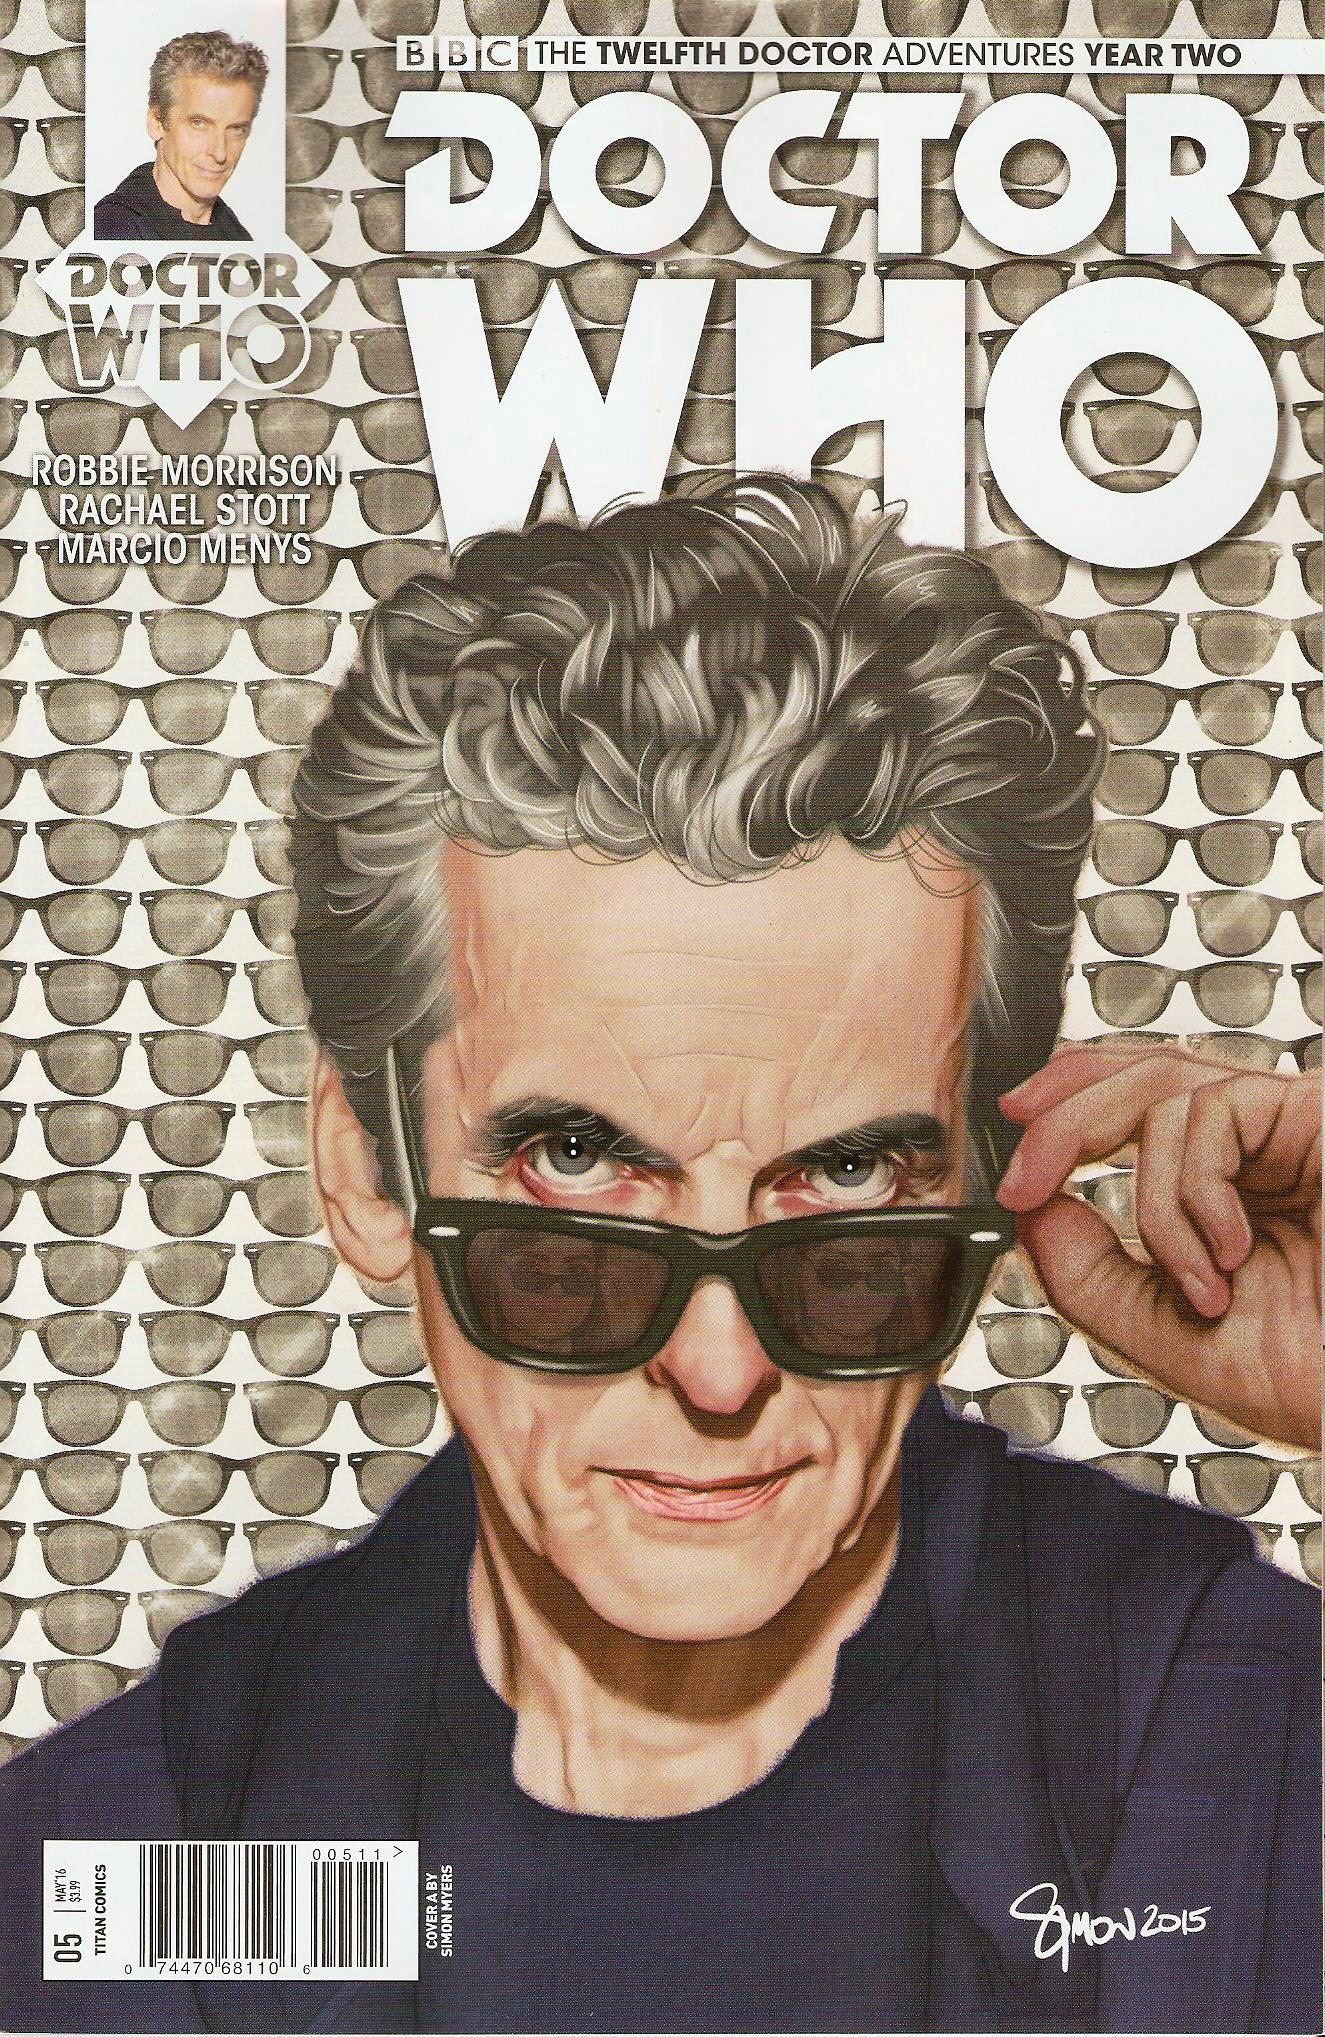 Twelfth doctor year 2 issue 5a